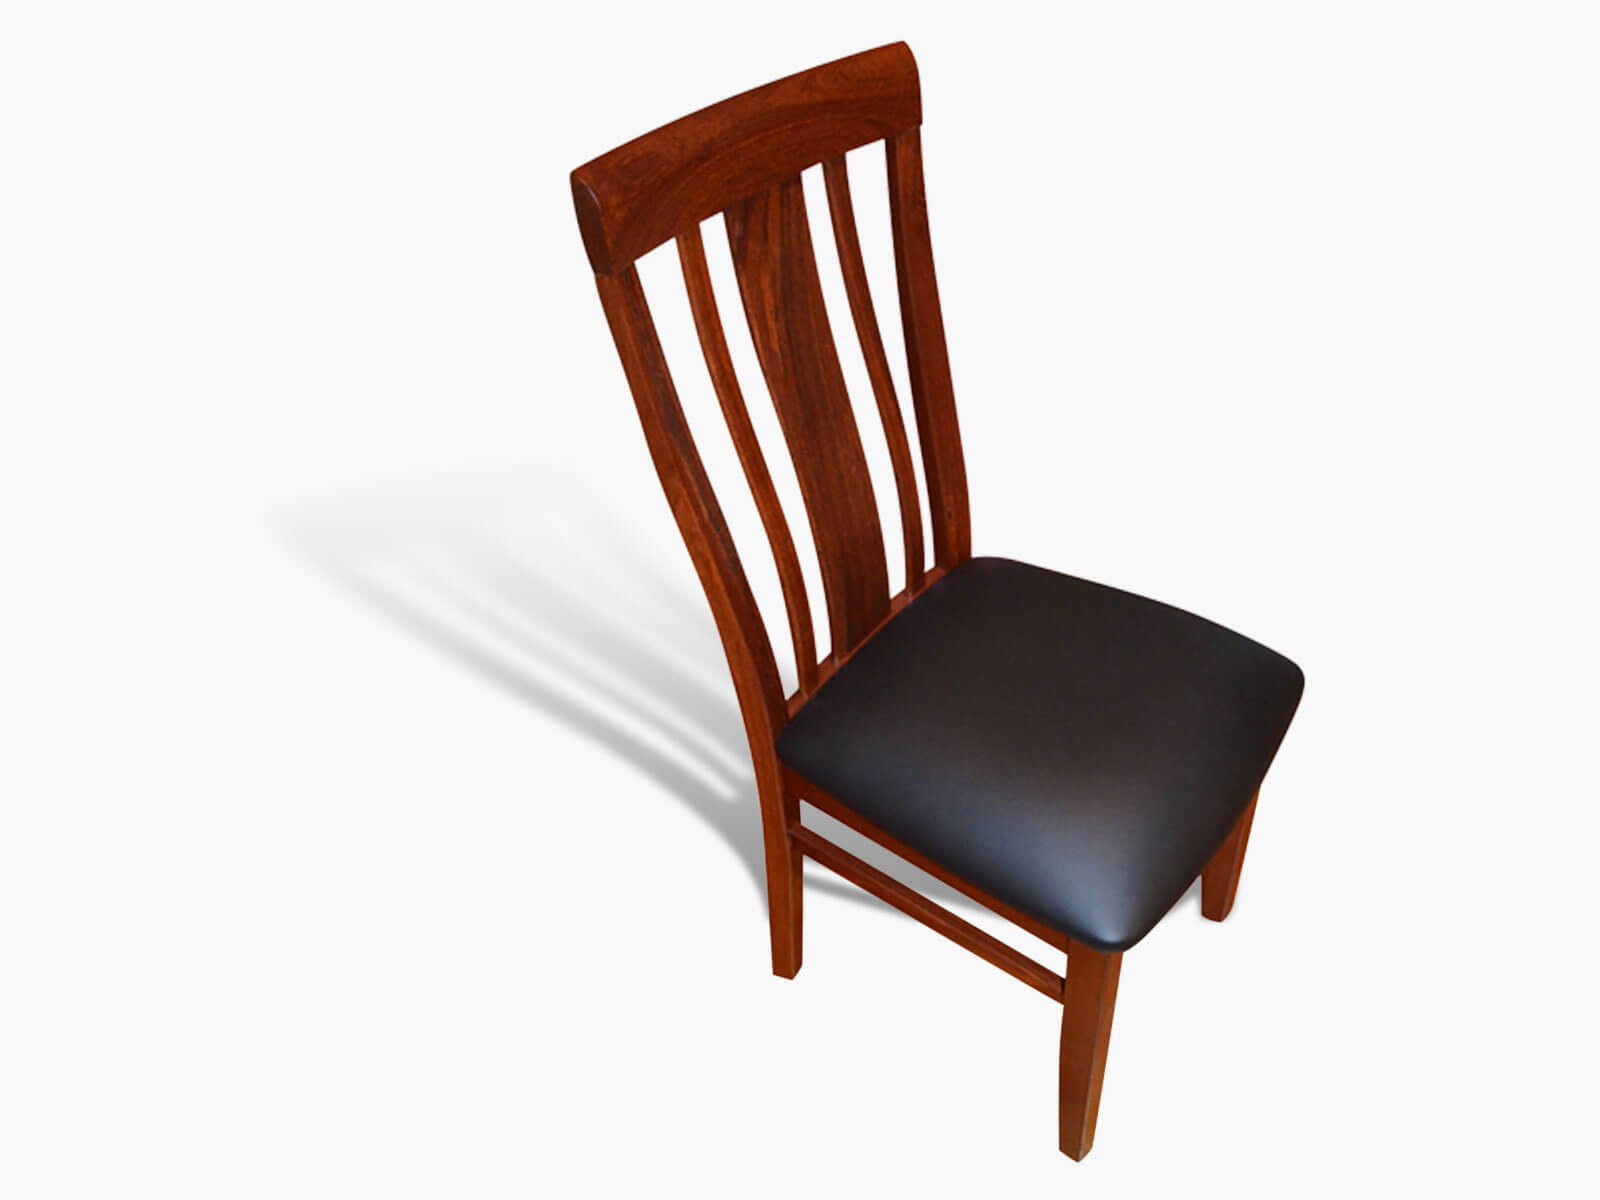 Port-Hedland-Dining-Chair Timber Furniture